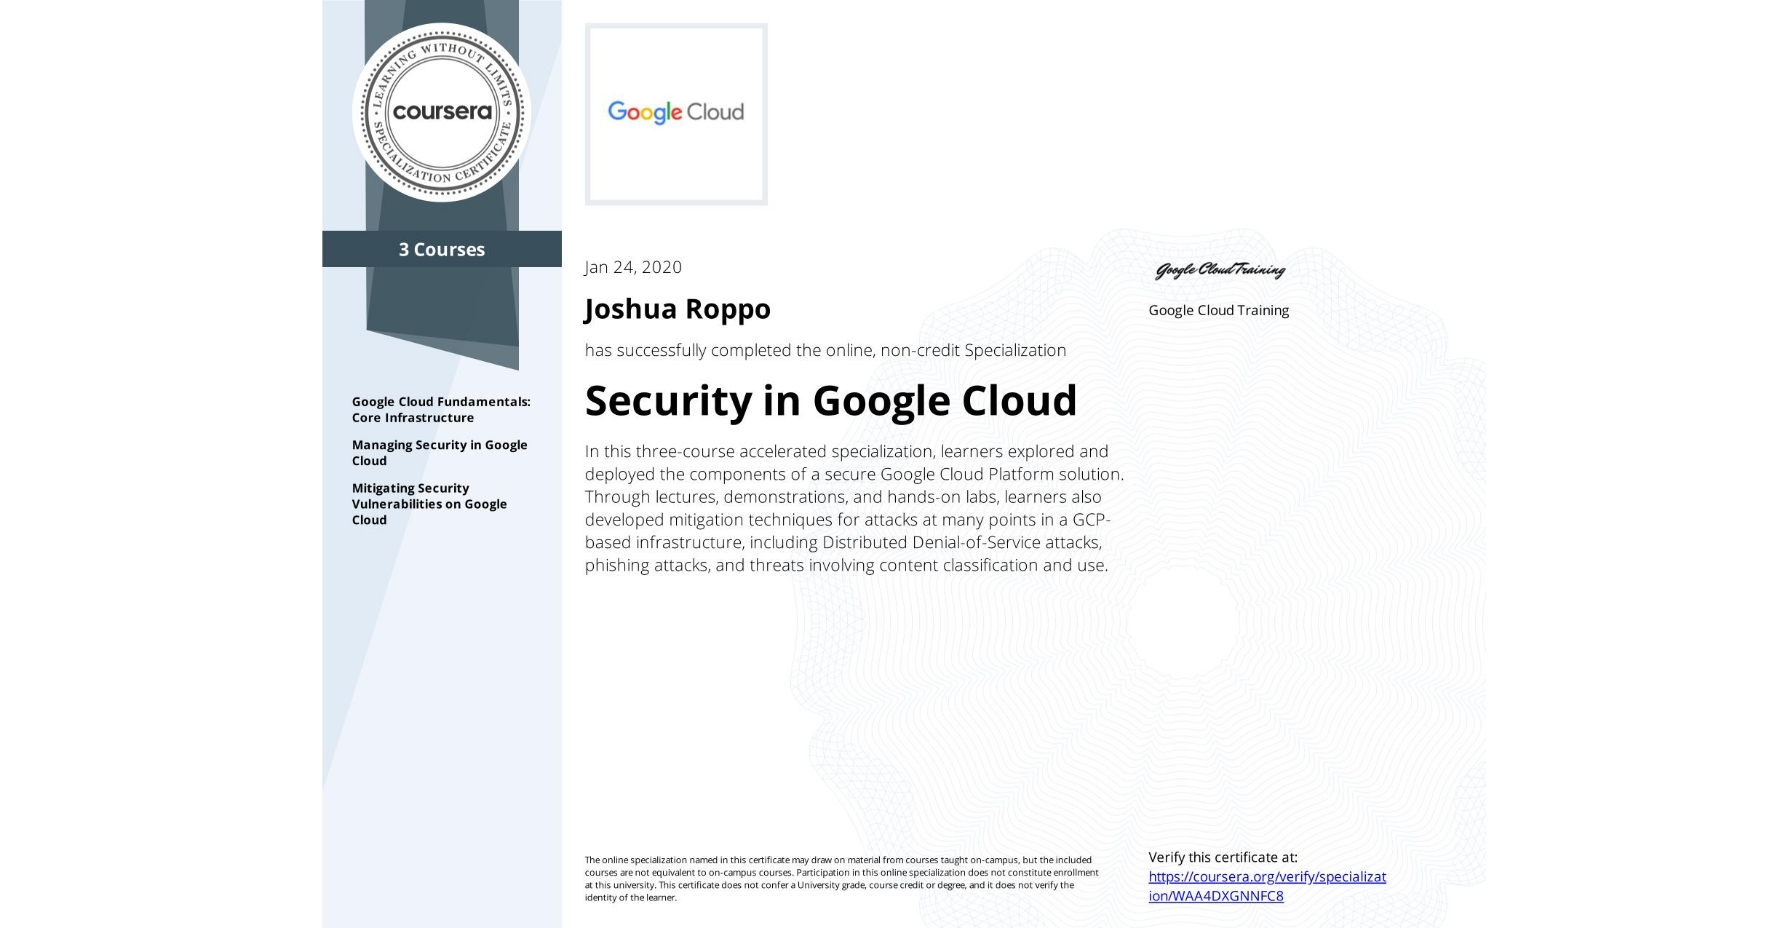 View certificate for Joshua Roppo, Security in Google Cloud Platform, offered through Coursera. In this three-course accelerated specialization, learners explored and deployed the components of a secure Google Cloud Platform solution. Through lectures, demonstrations, and hands-on labs, learners also developed mitigation techniques for attacks at many points in a GCP-based infrastructure, including Distributed Denial-of-Service attacks, phishing attacks, and threats involving content classification and use.